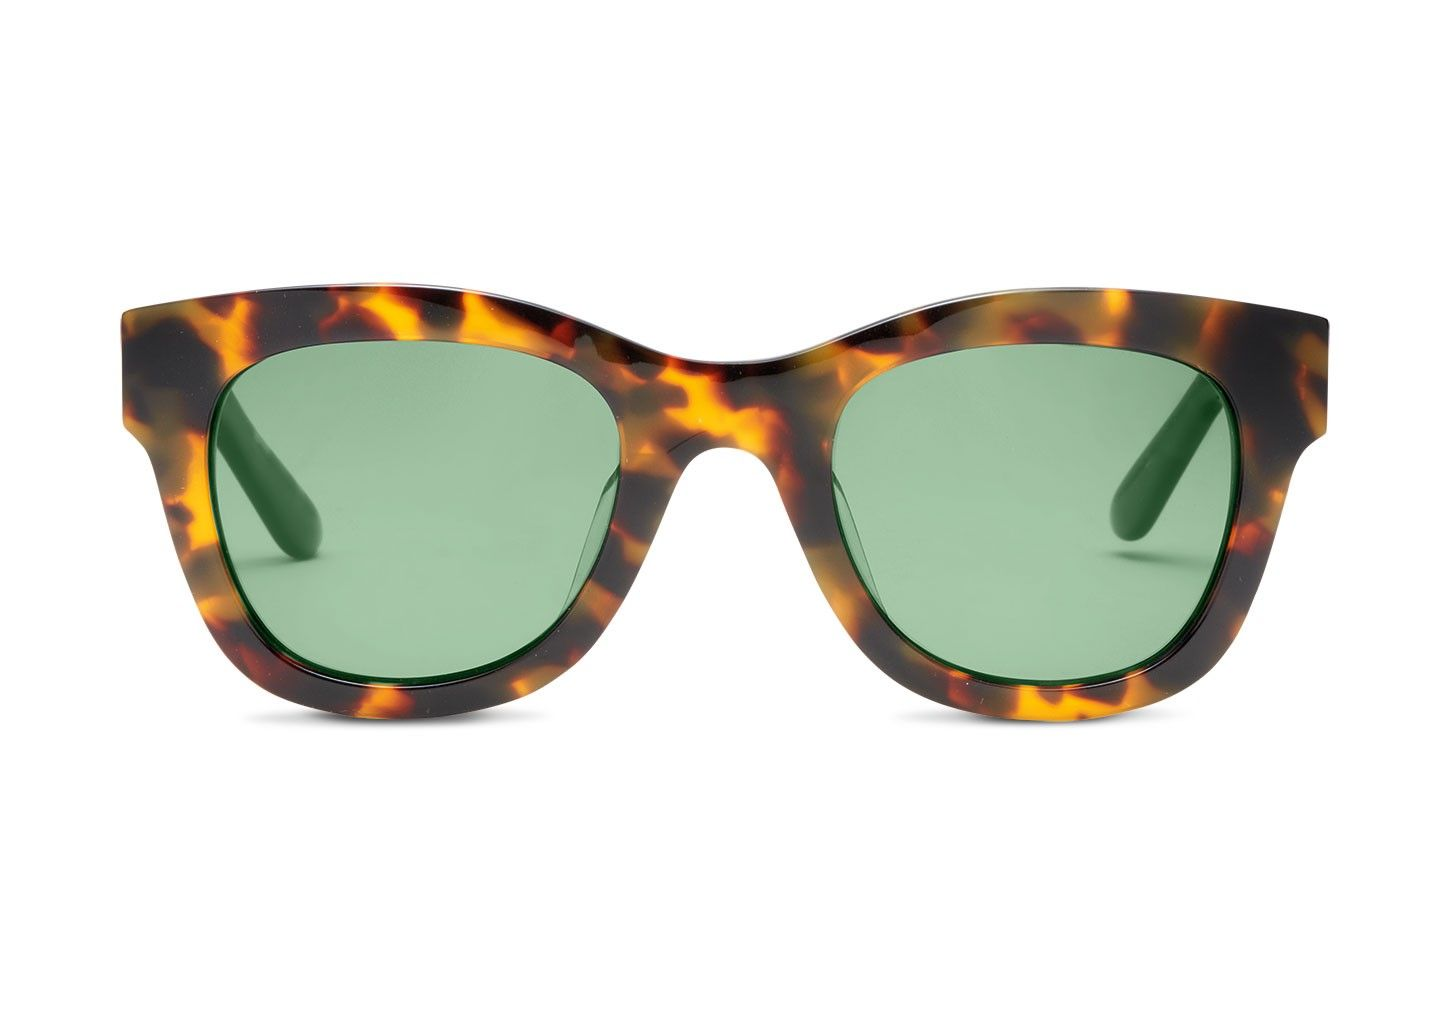 1e3dc2519c TOMS Toms Chelsea Blonde Tortoise Zeiss Polarized Sunglasses With Green  Grey Lens.  toms  all